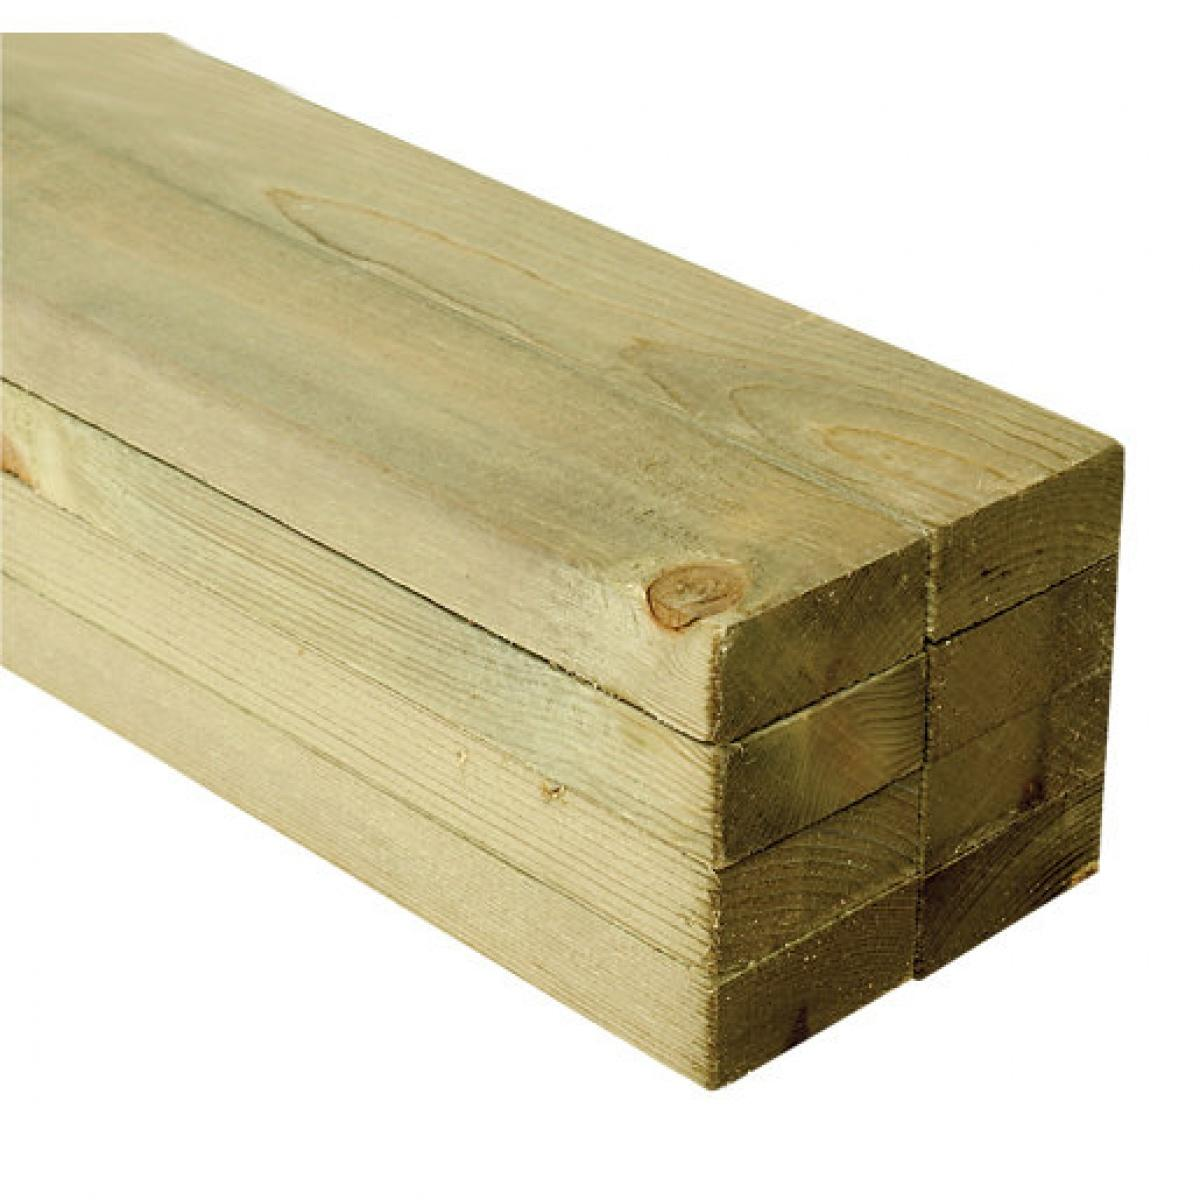 50mm x 150mm UNGRADED TREATED CARCASSING - Nottage Timber Merchants